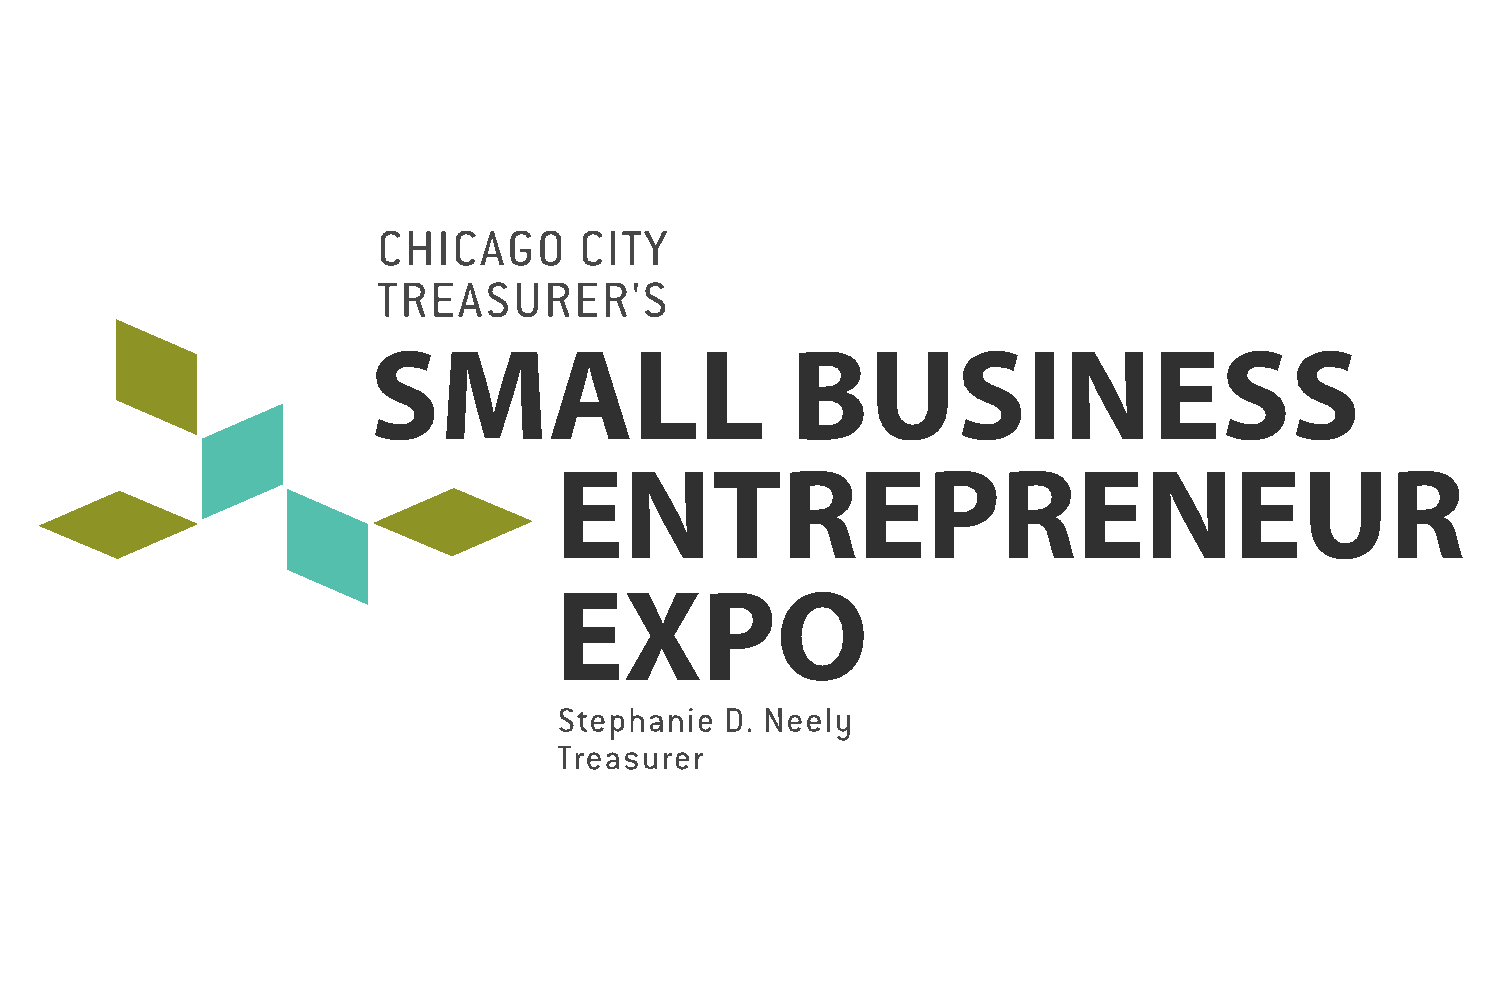 Getting Ready for the Small Business Entrepreneur Expo